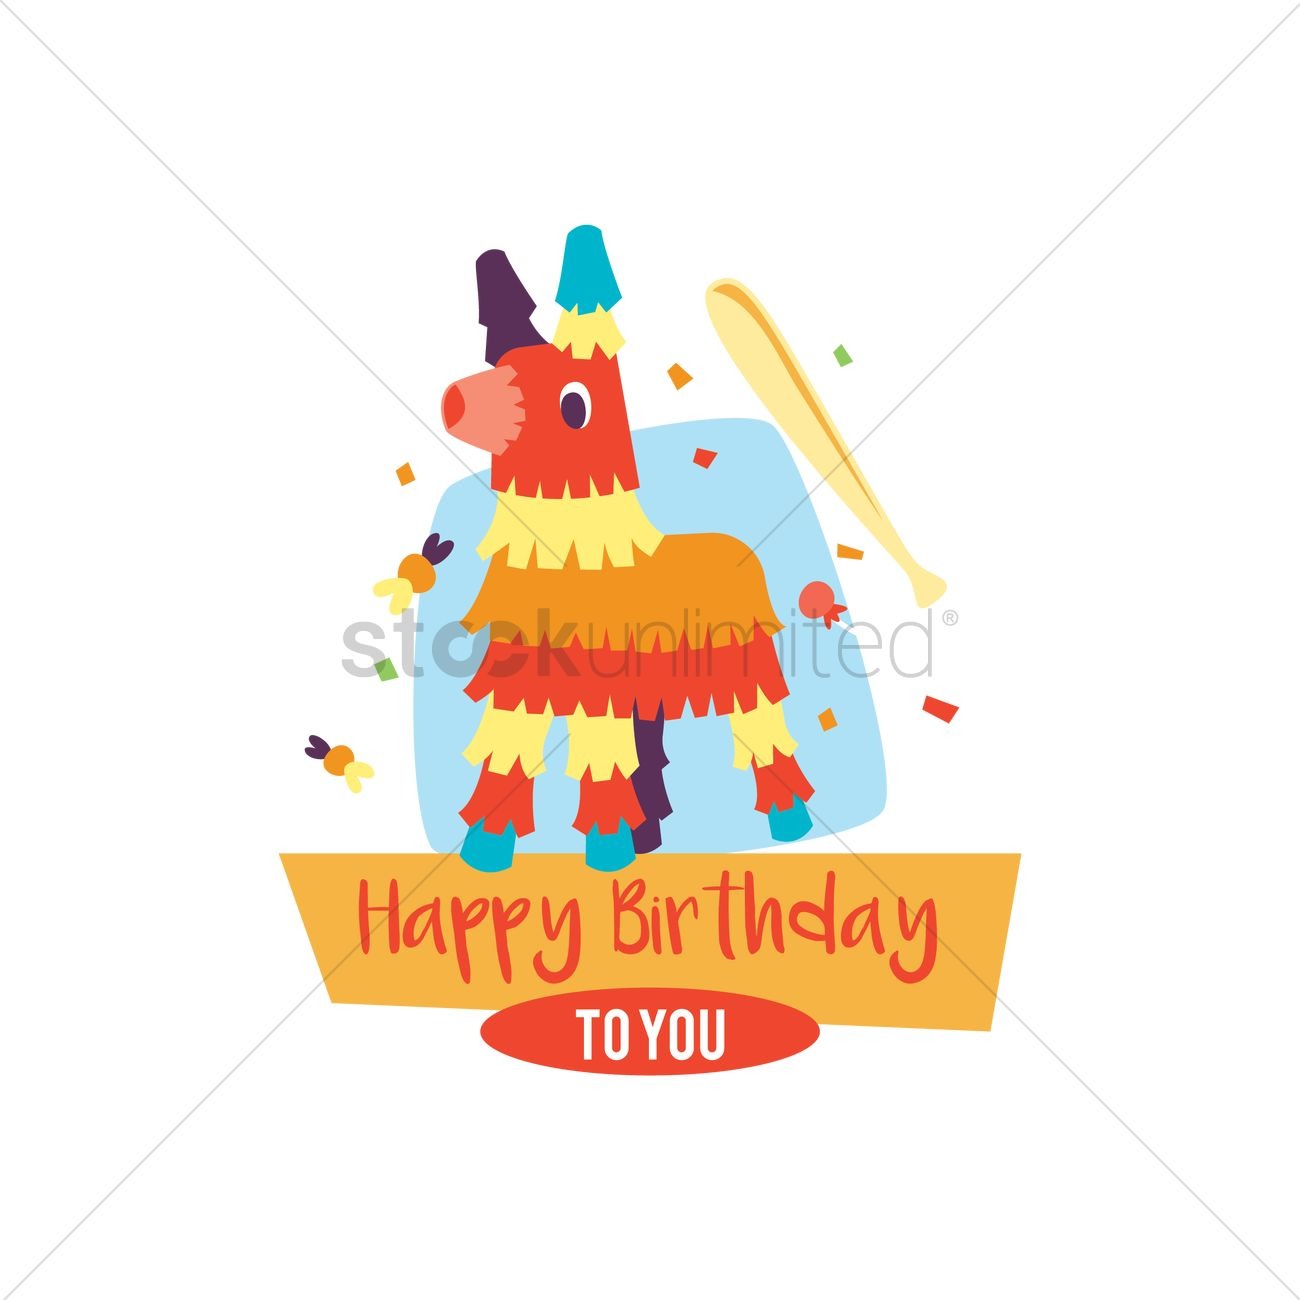 Happy birthday card with pinata vector image 1803156 stockunlimited happy birthday card with pinata vector graphic stock clipart bookmarktalkfo Gallery